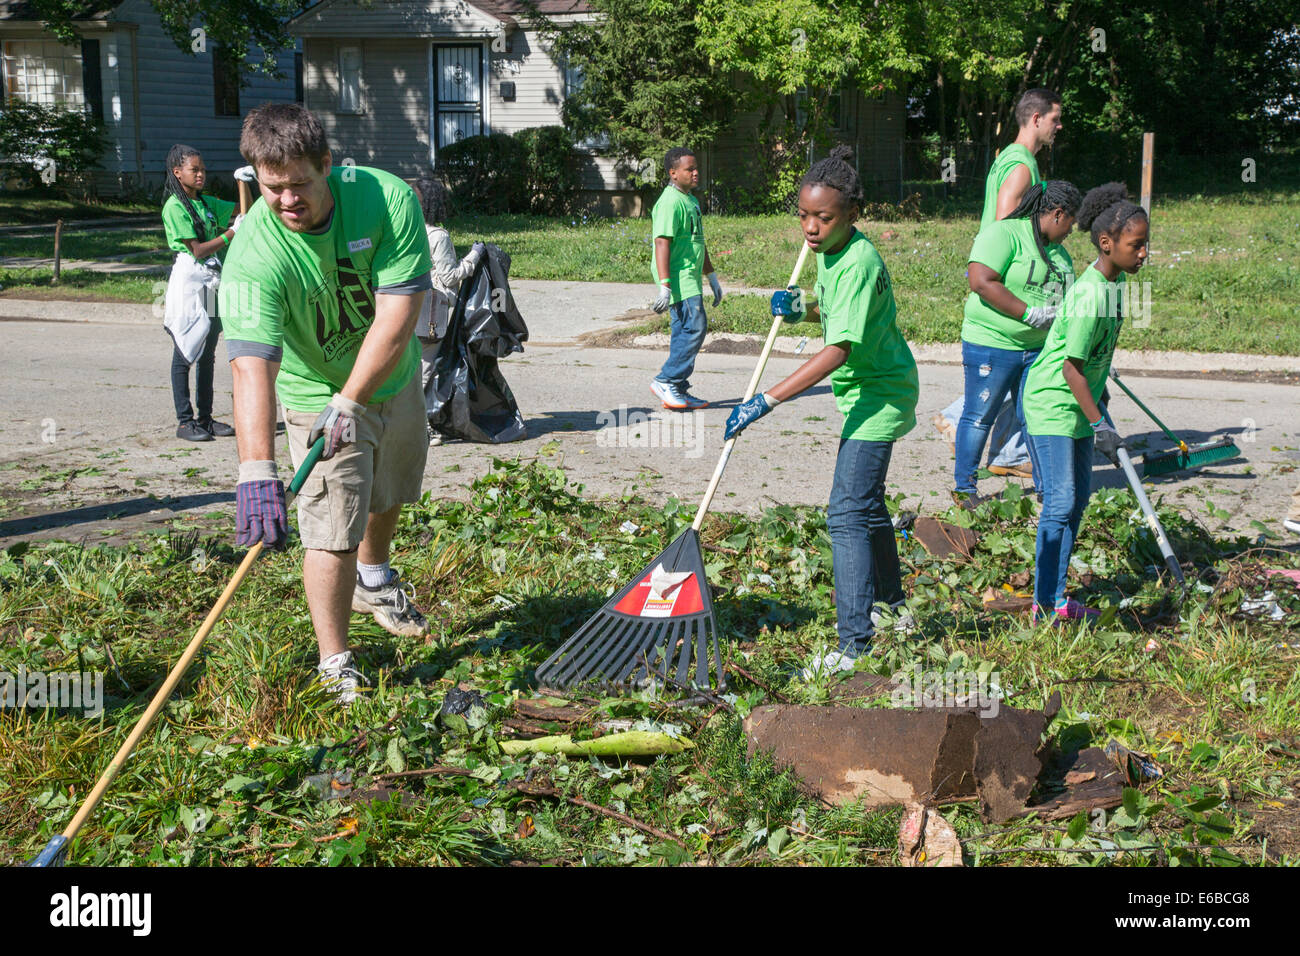 Detroit, Michigan - Volunteers clean up a distressed neighborhood during a week-long community improvement initiative. - Stock Image